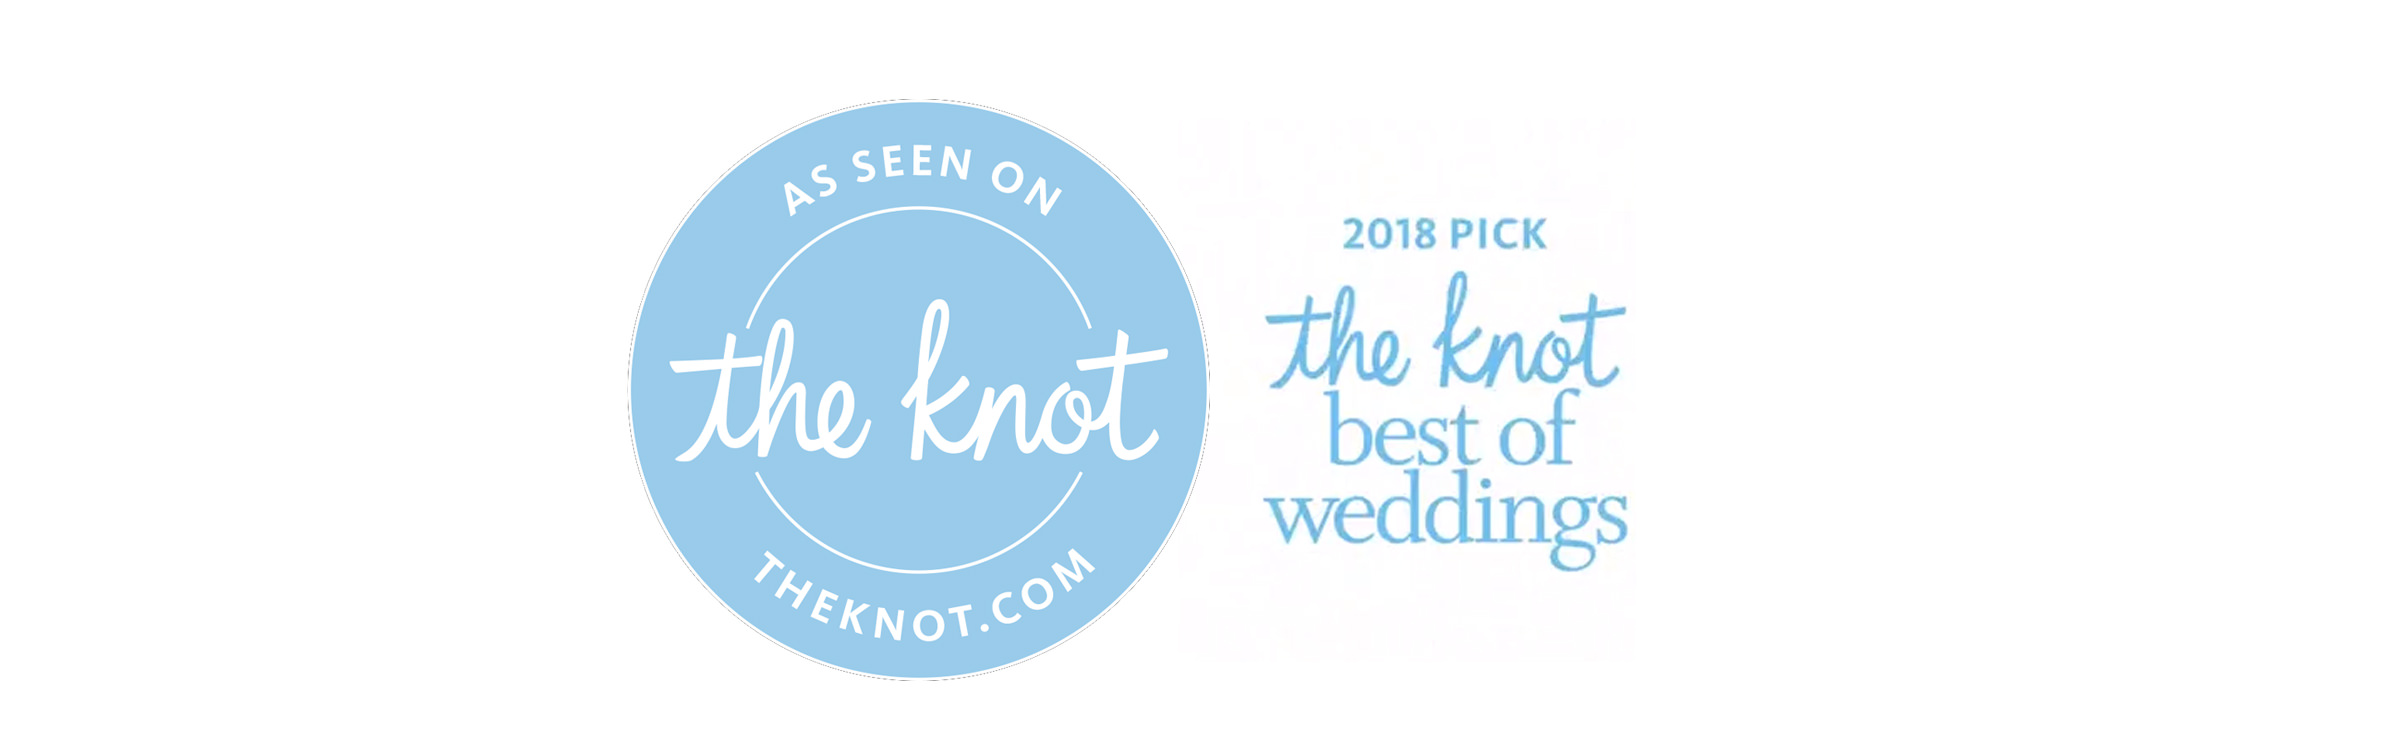 the knot Best of the Weddings 2018